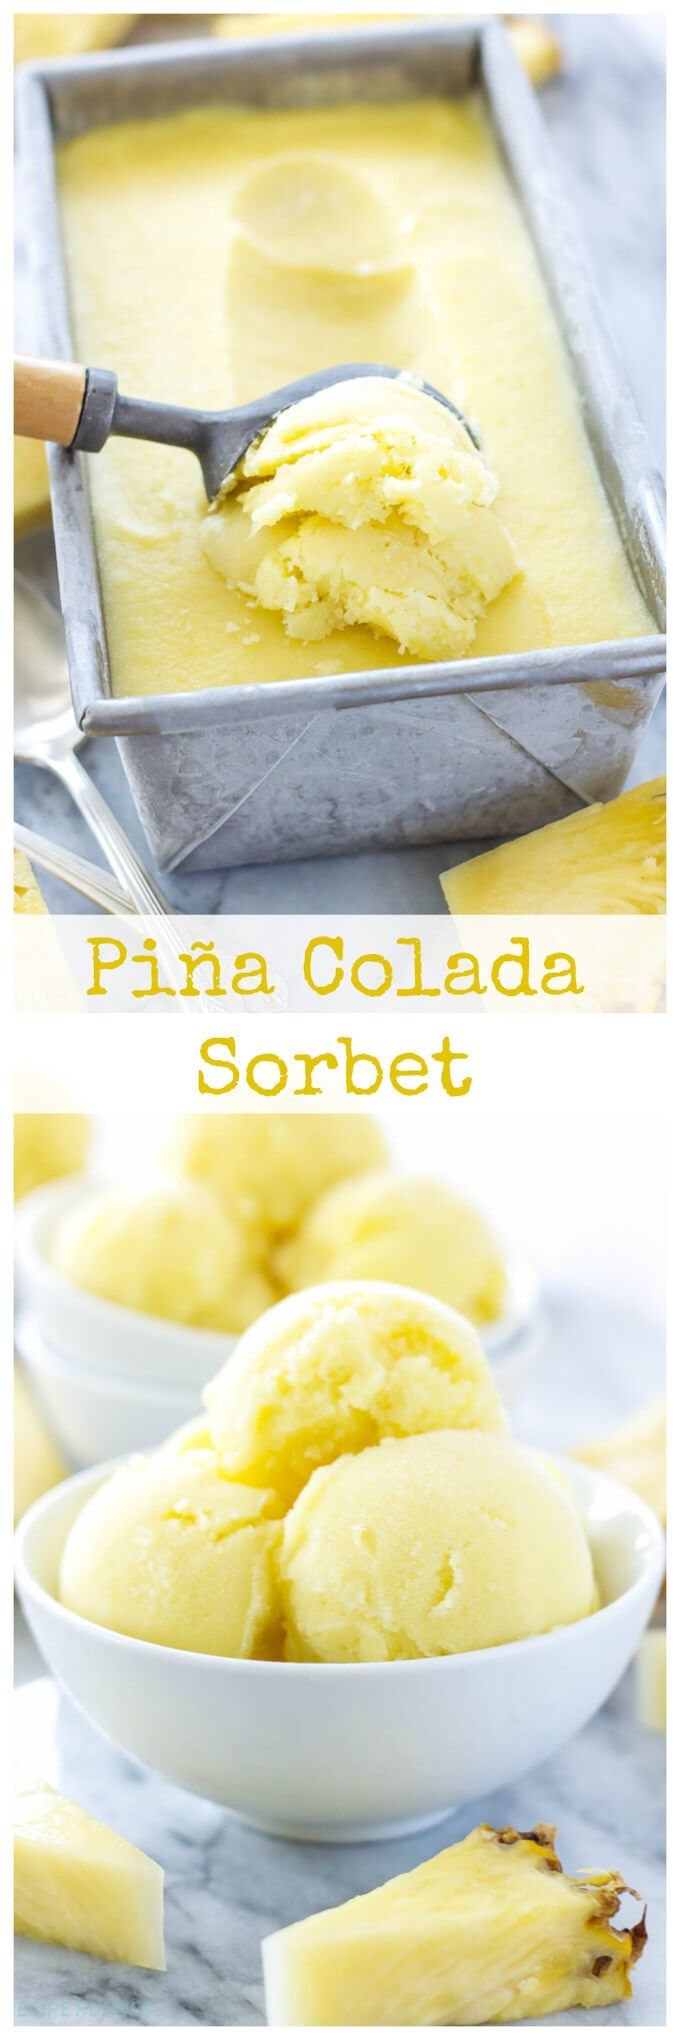 Piña Colada Sorbet - Spoonful of Flavor                                                                                                                                                                                 More